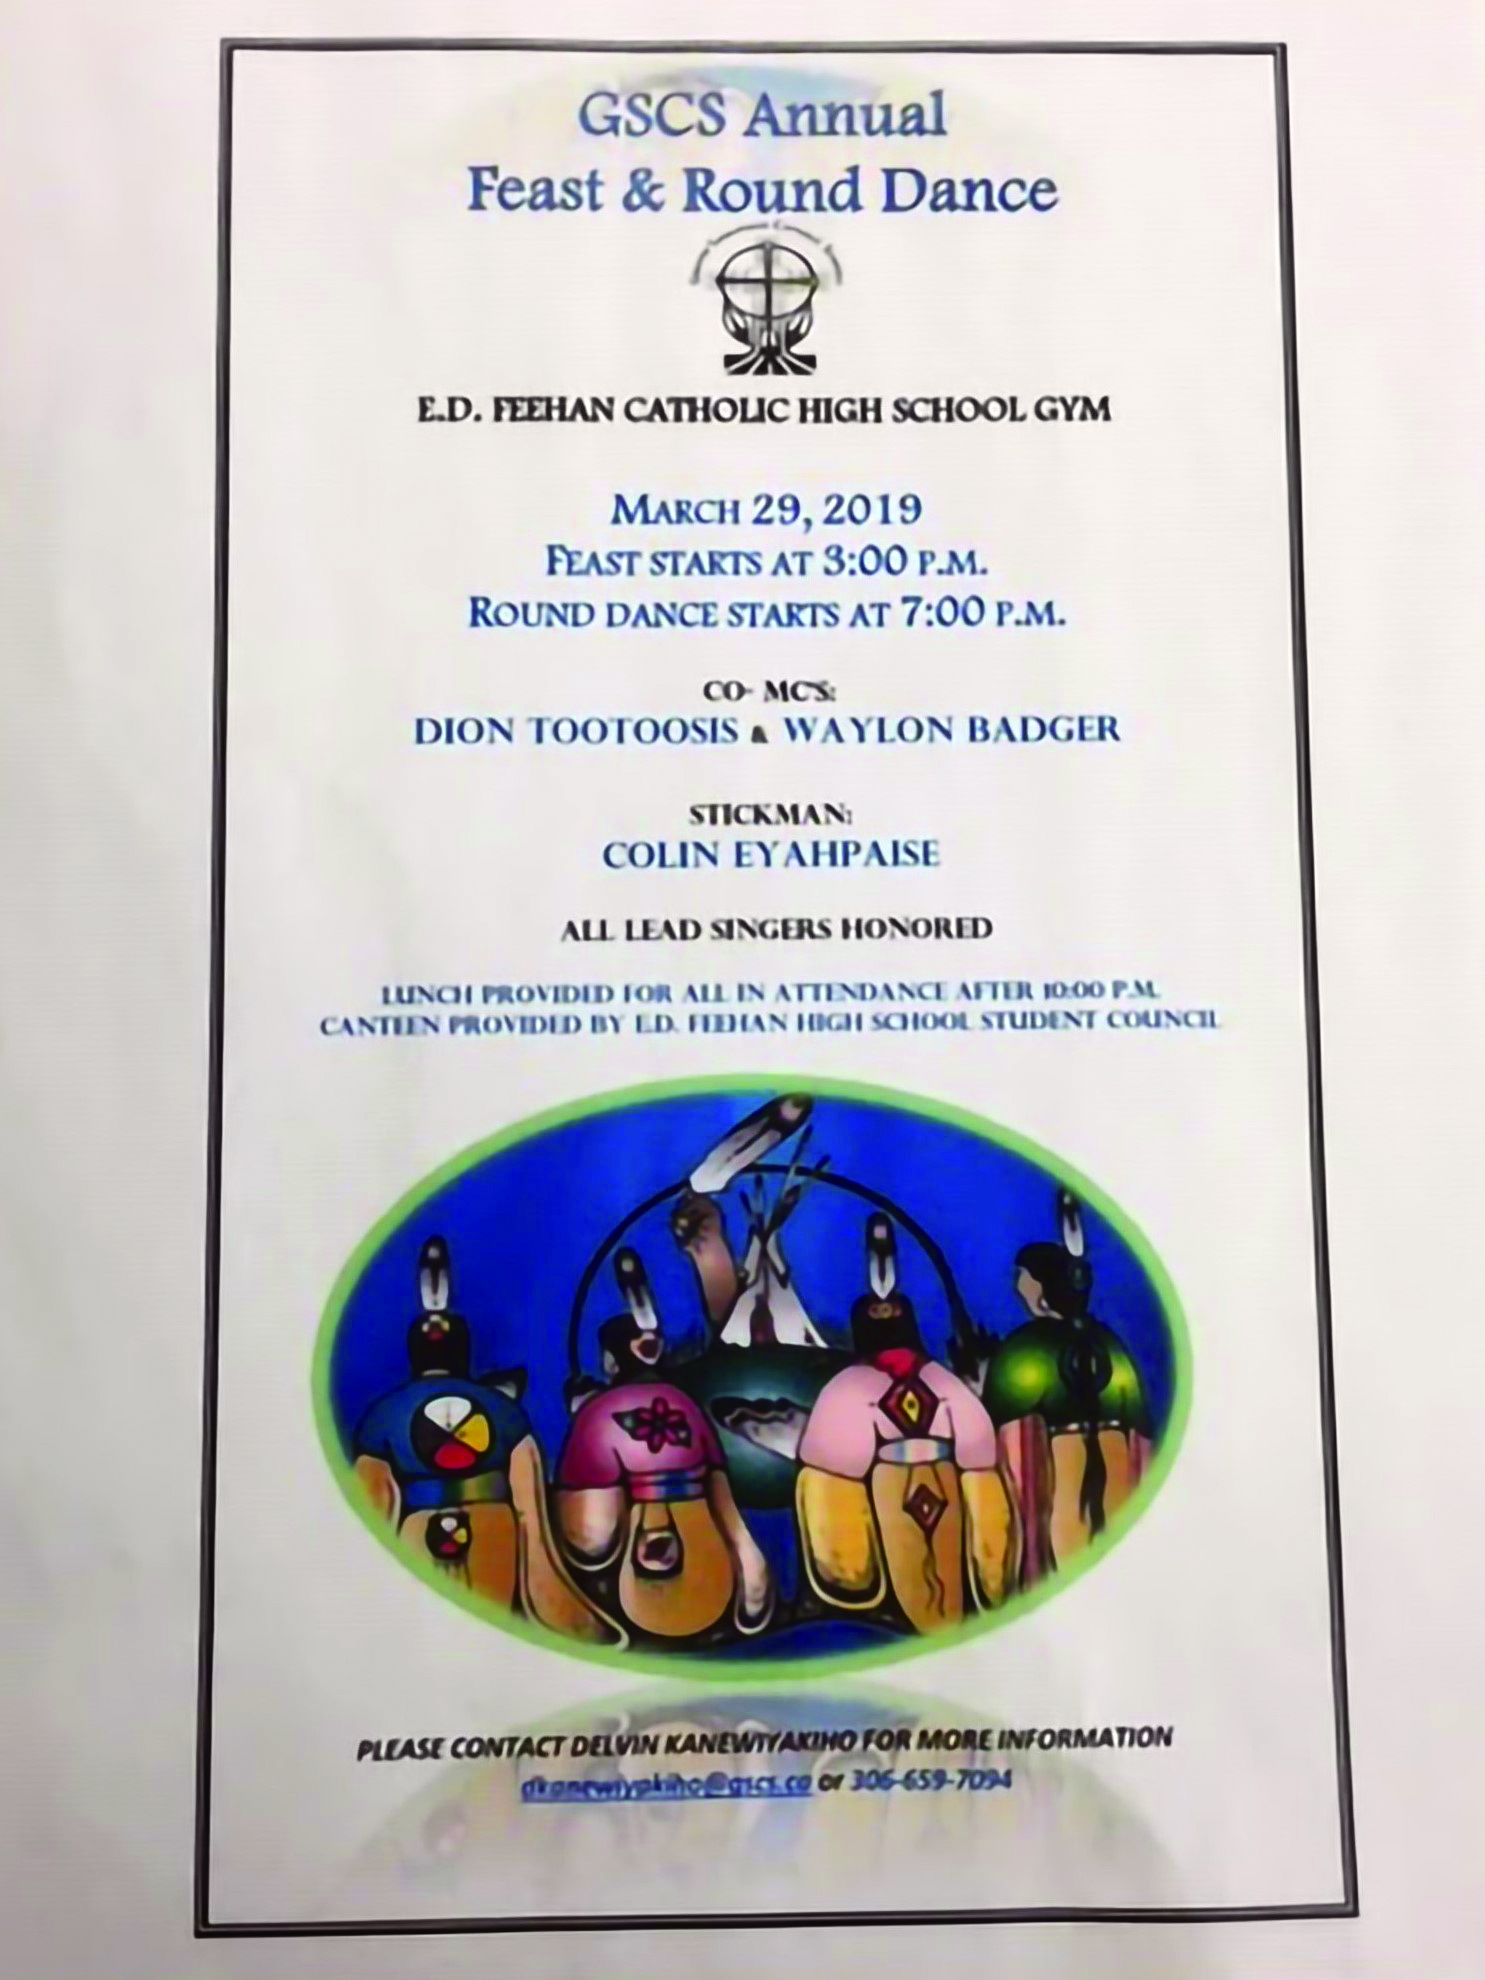 The school district hosts an Indigenous feast and round dance